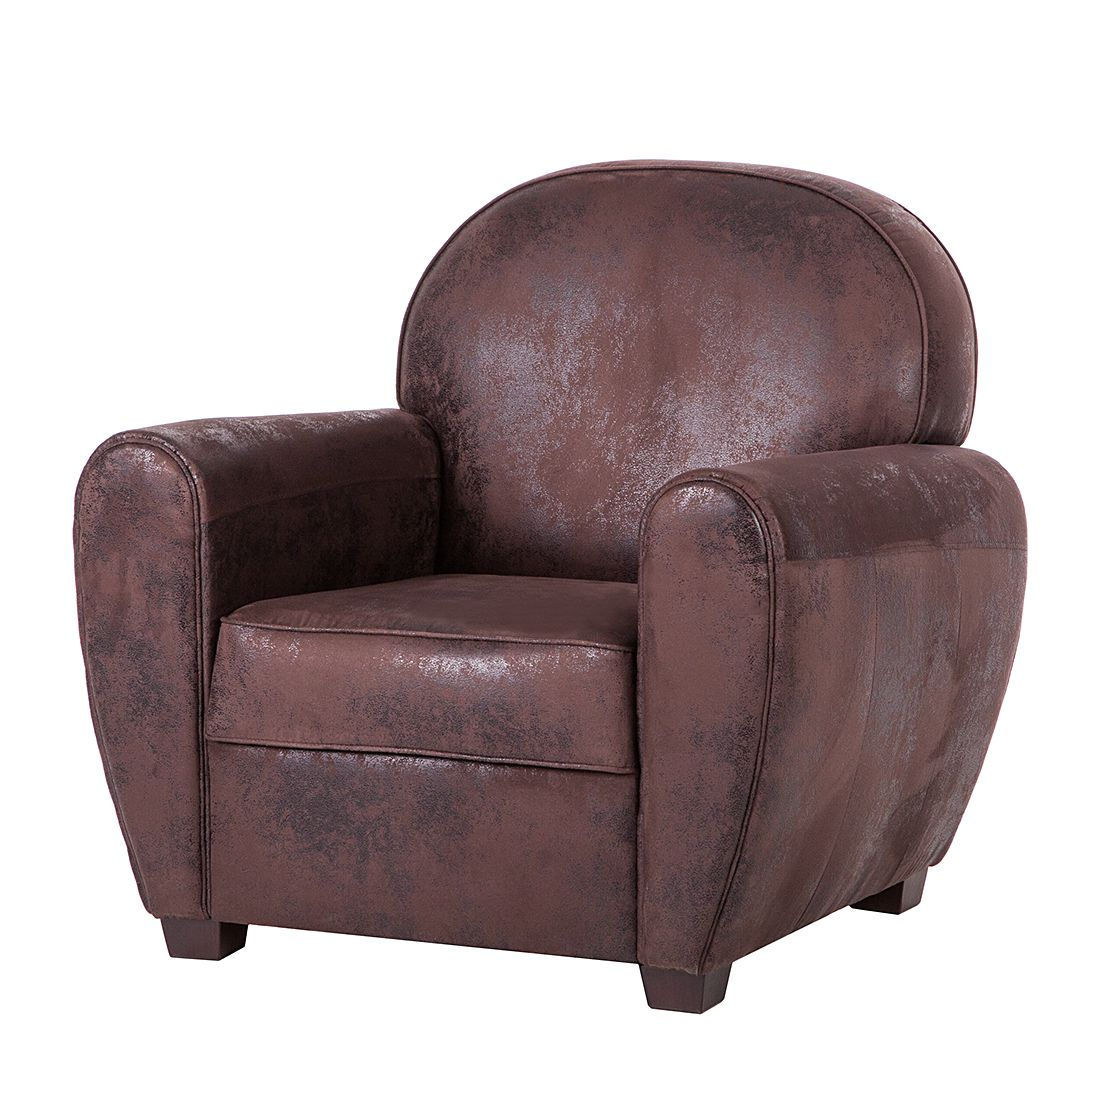 fauteuil havanna cuir synth tique vieilli marron ars manufacti par ars manufacti chez home24 fr. Black Bedroom Furniture Sets. Home Design Ideas